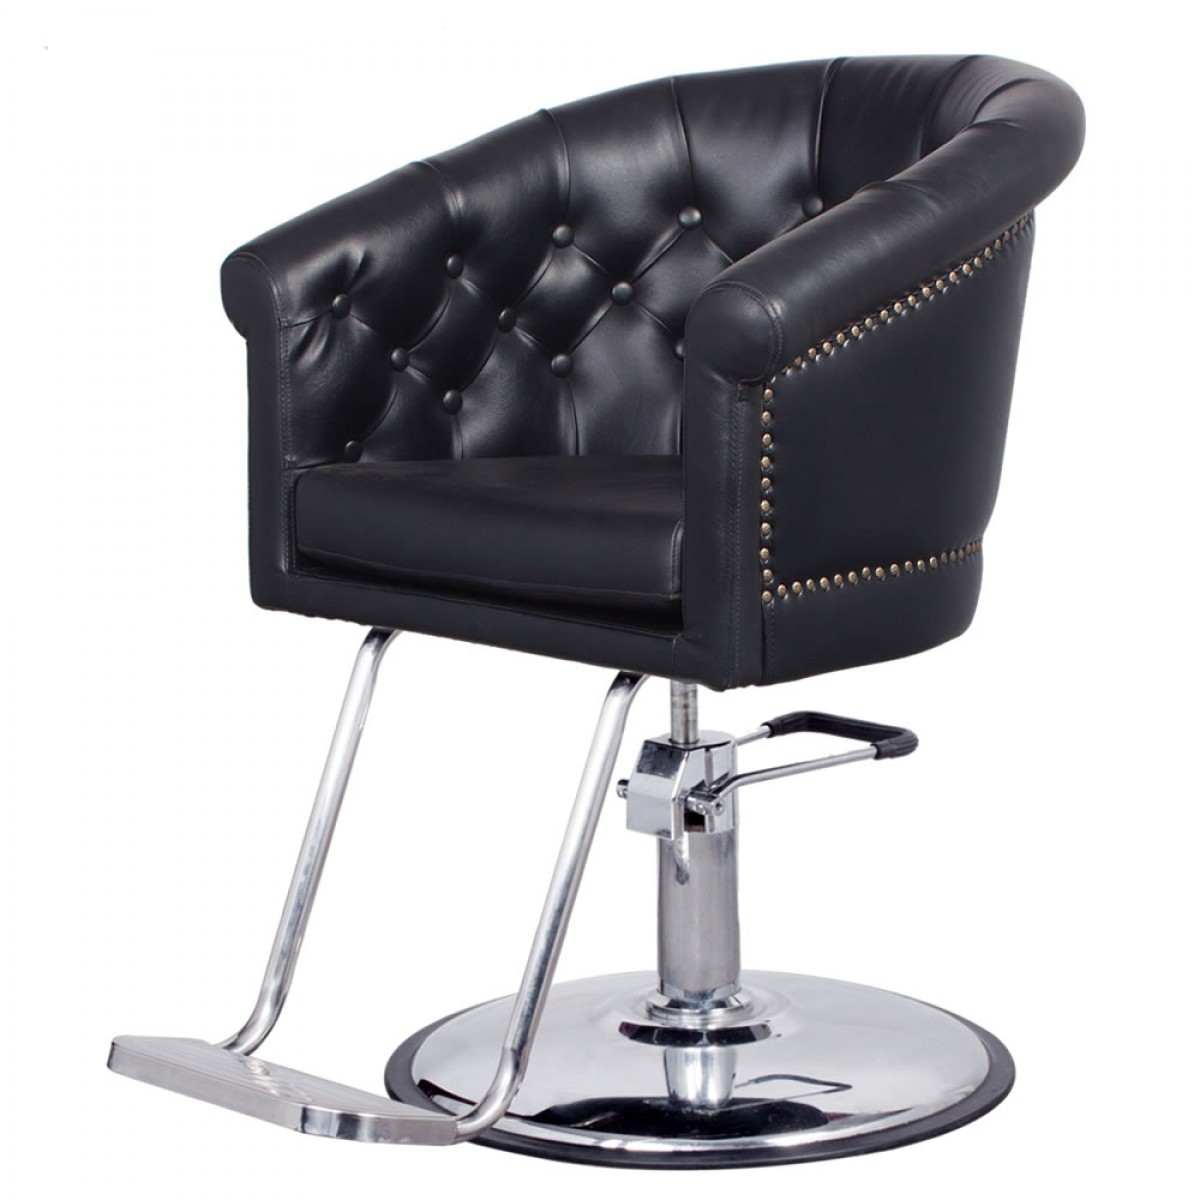 """VERNAZZA"" cheap hair salon equipment for sale by supplier, hair salon equipment near California, Texas, Florida & New York"